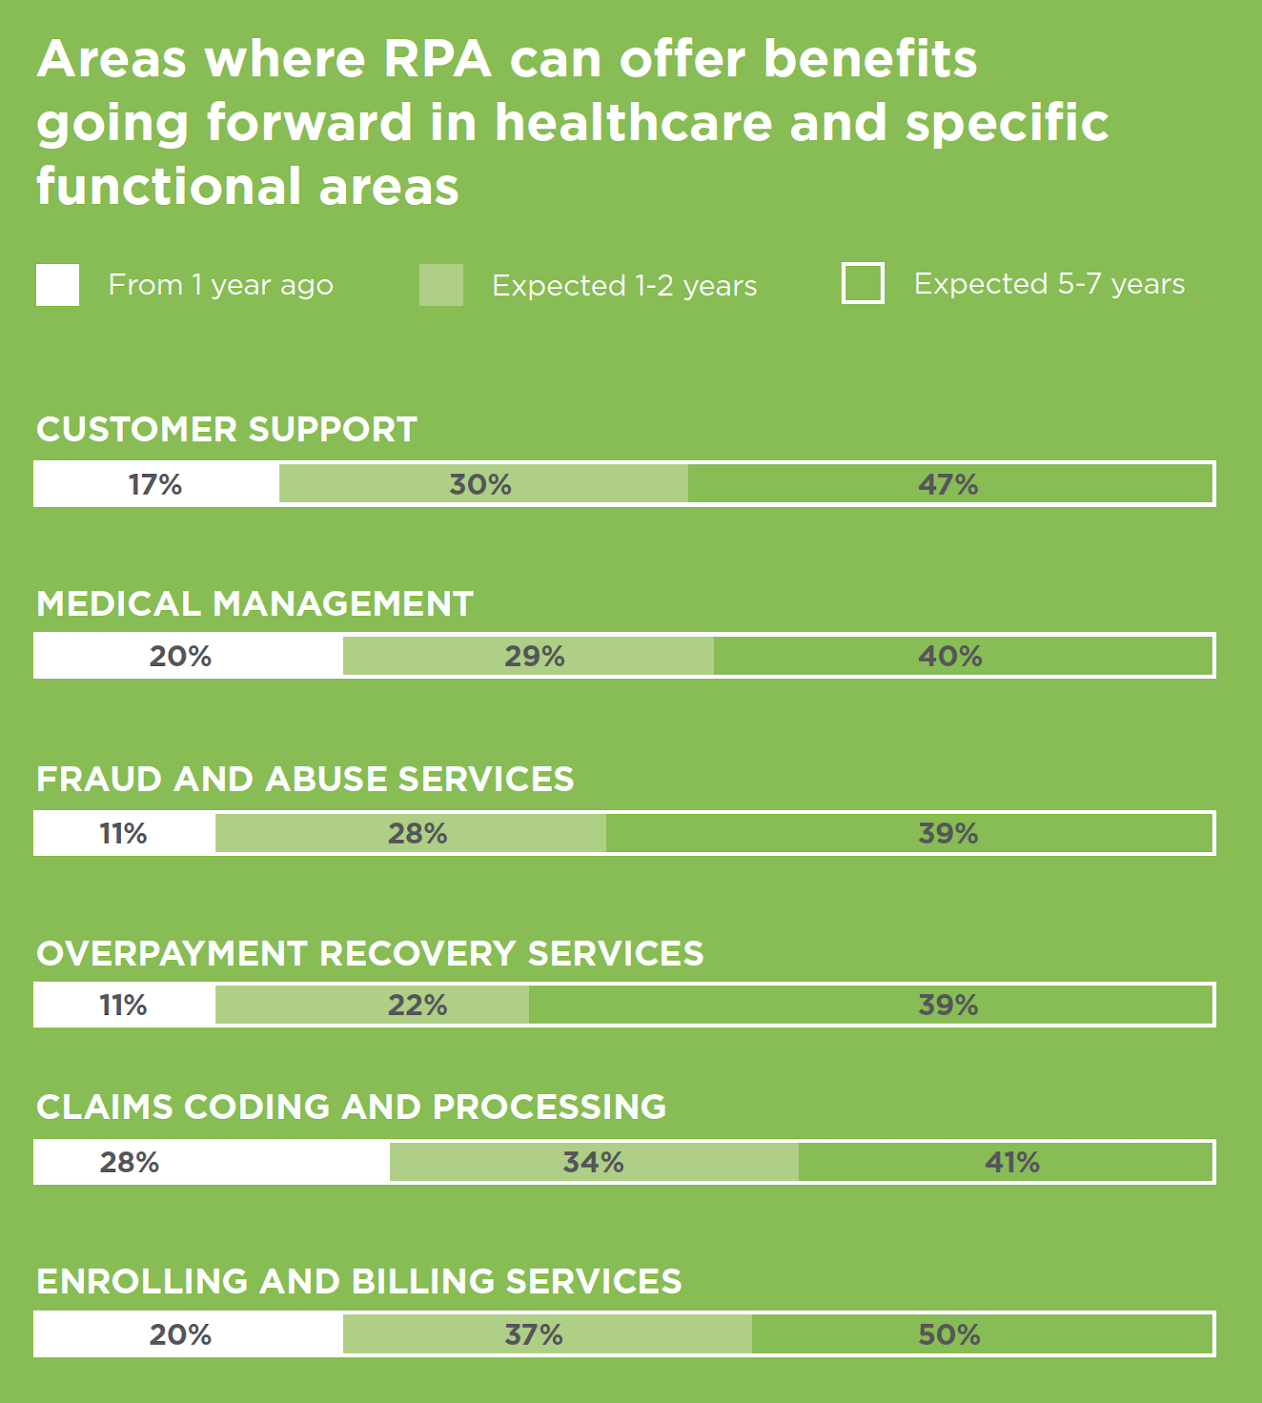 Areas where RPA can offer benefits going forward in healthcare and specific functional areas